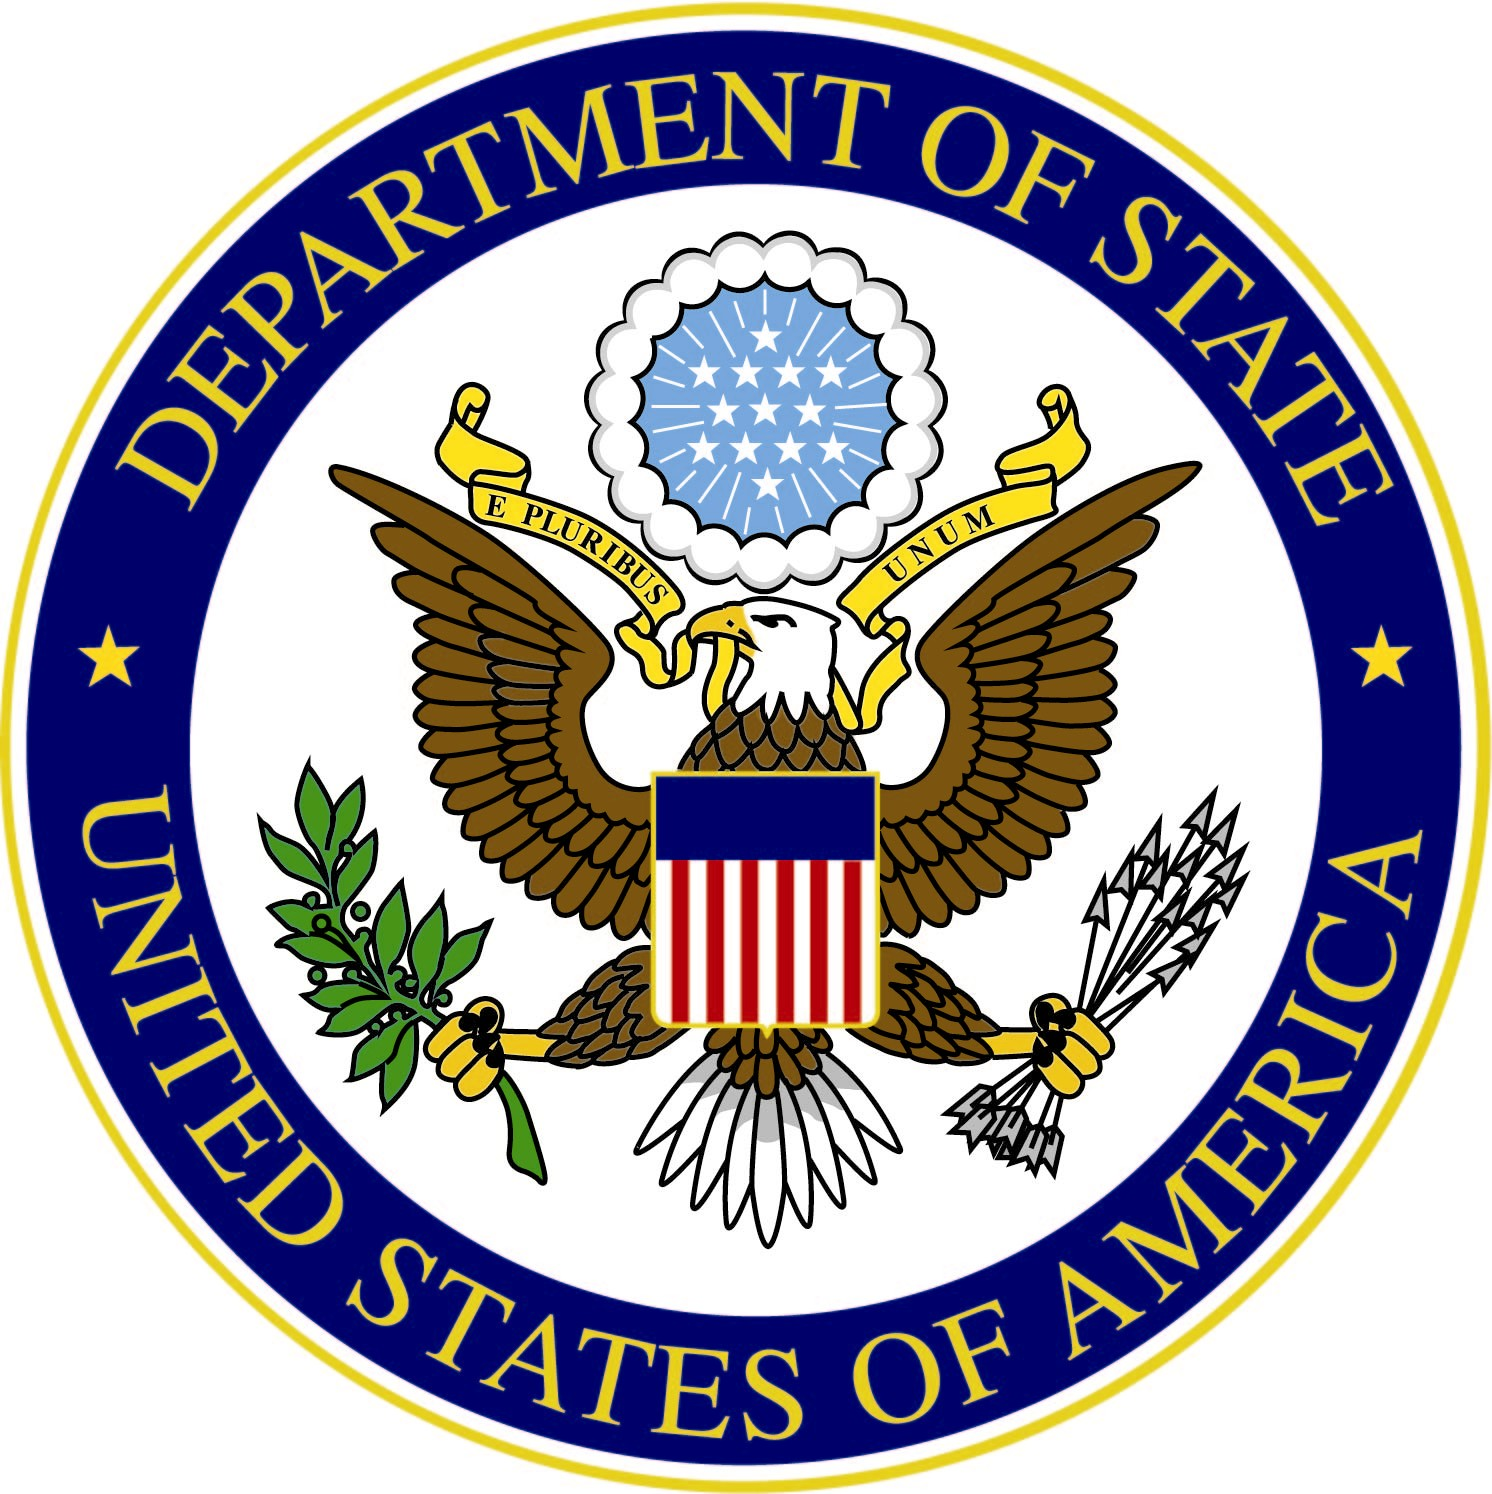 3statedepartment